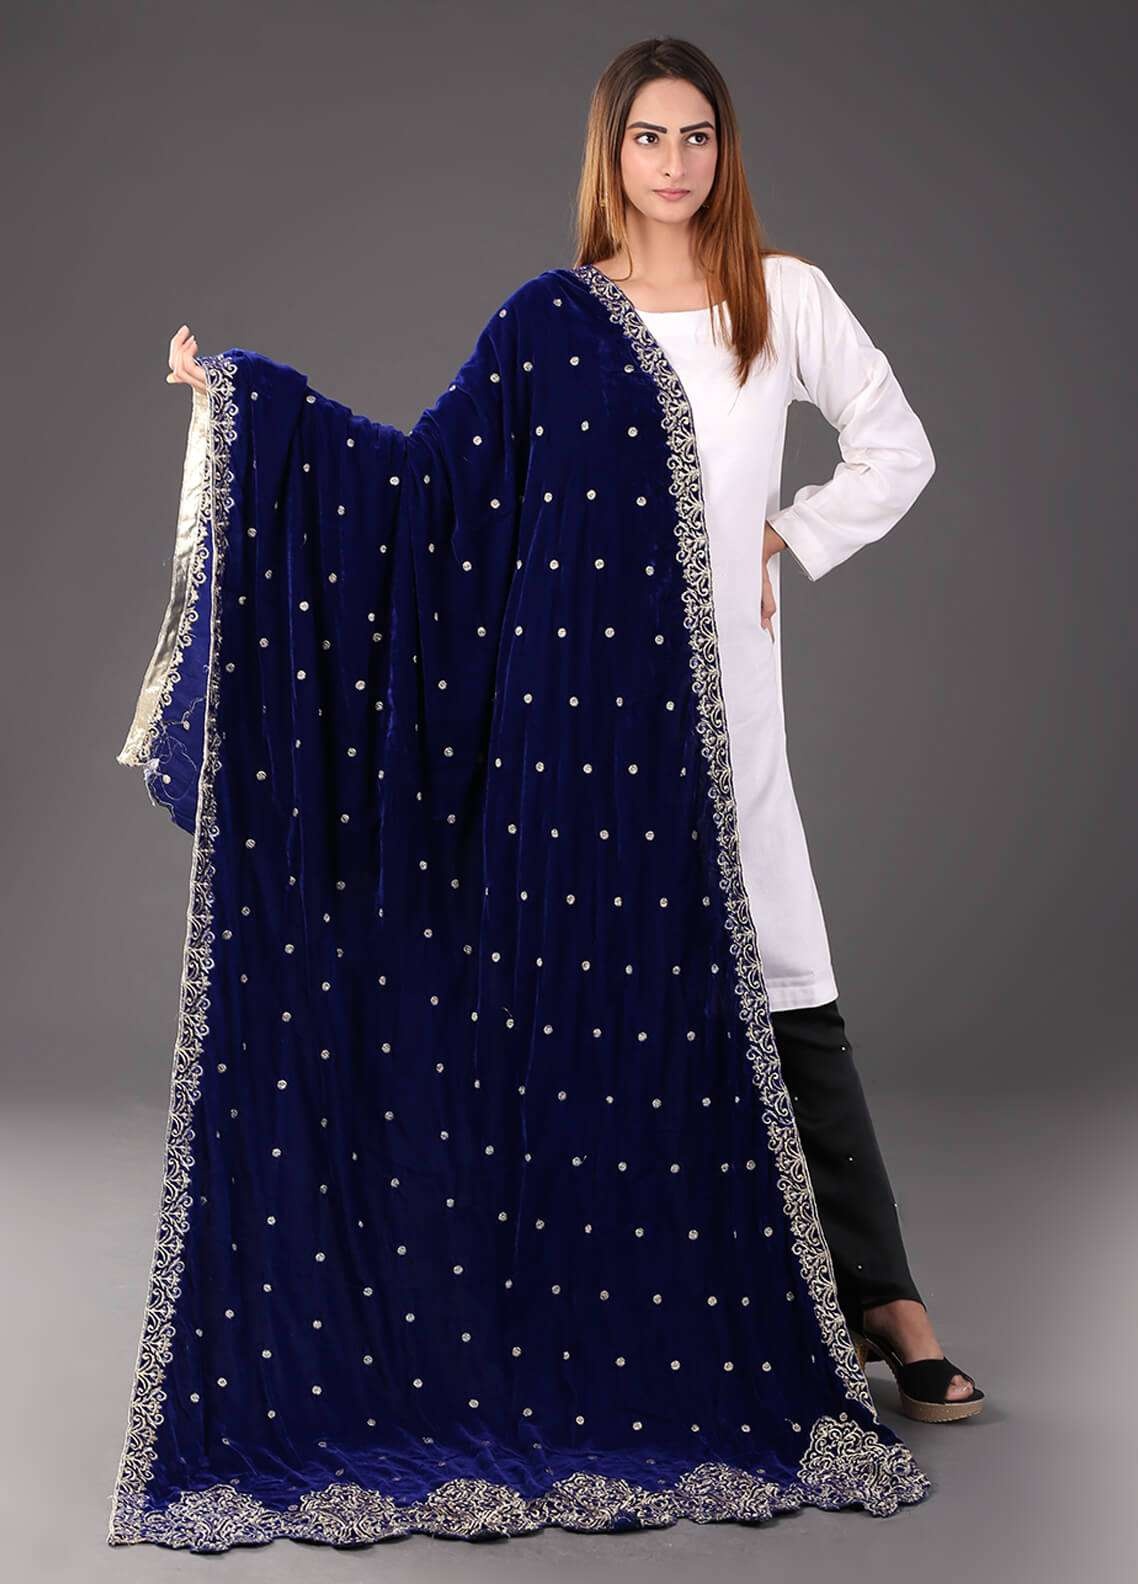 Sanaulla Exclusive Range Embroidered Velvet  Shawl 473 - Winter Collection